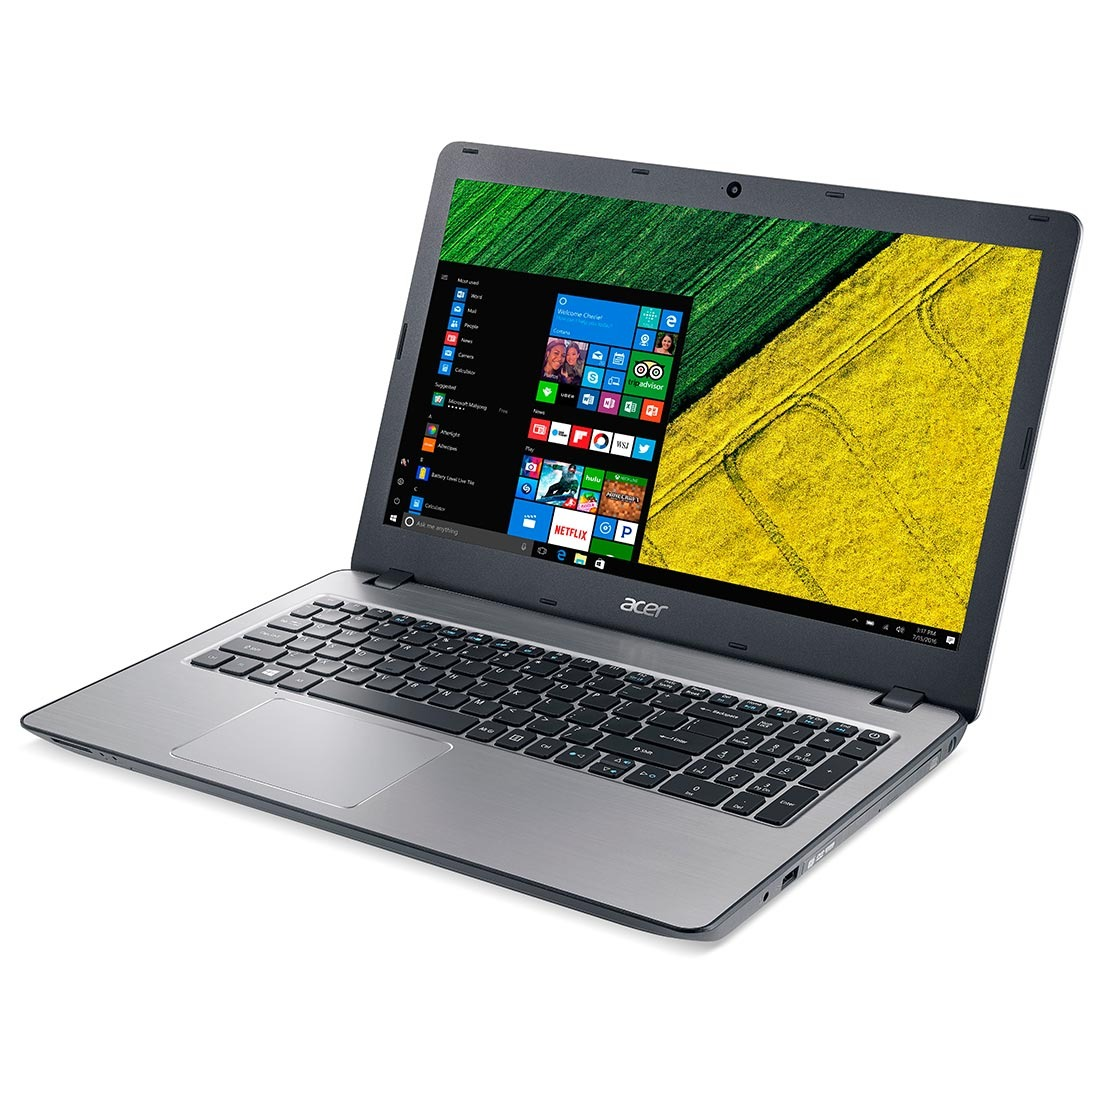 ACER ASPIRE 1183 DRIVERS UPDATE